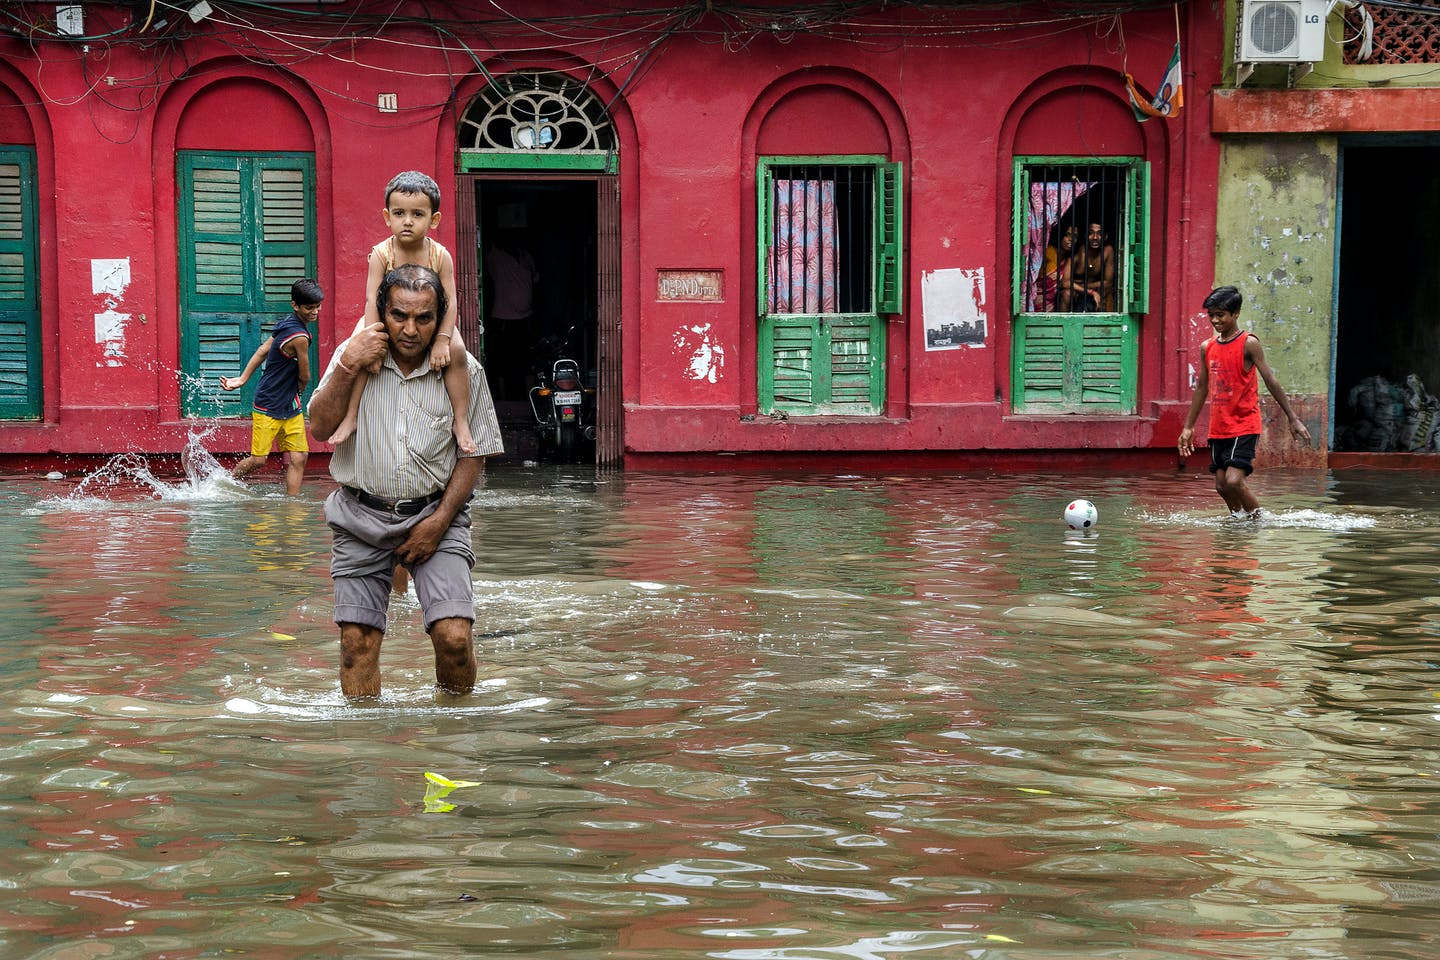 Flood in Kolkata, India